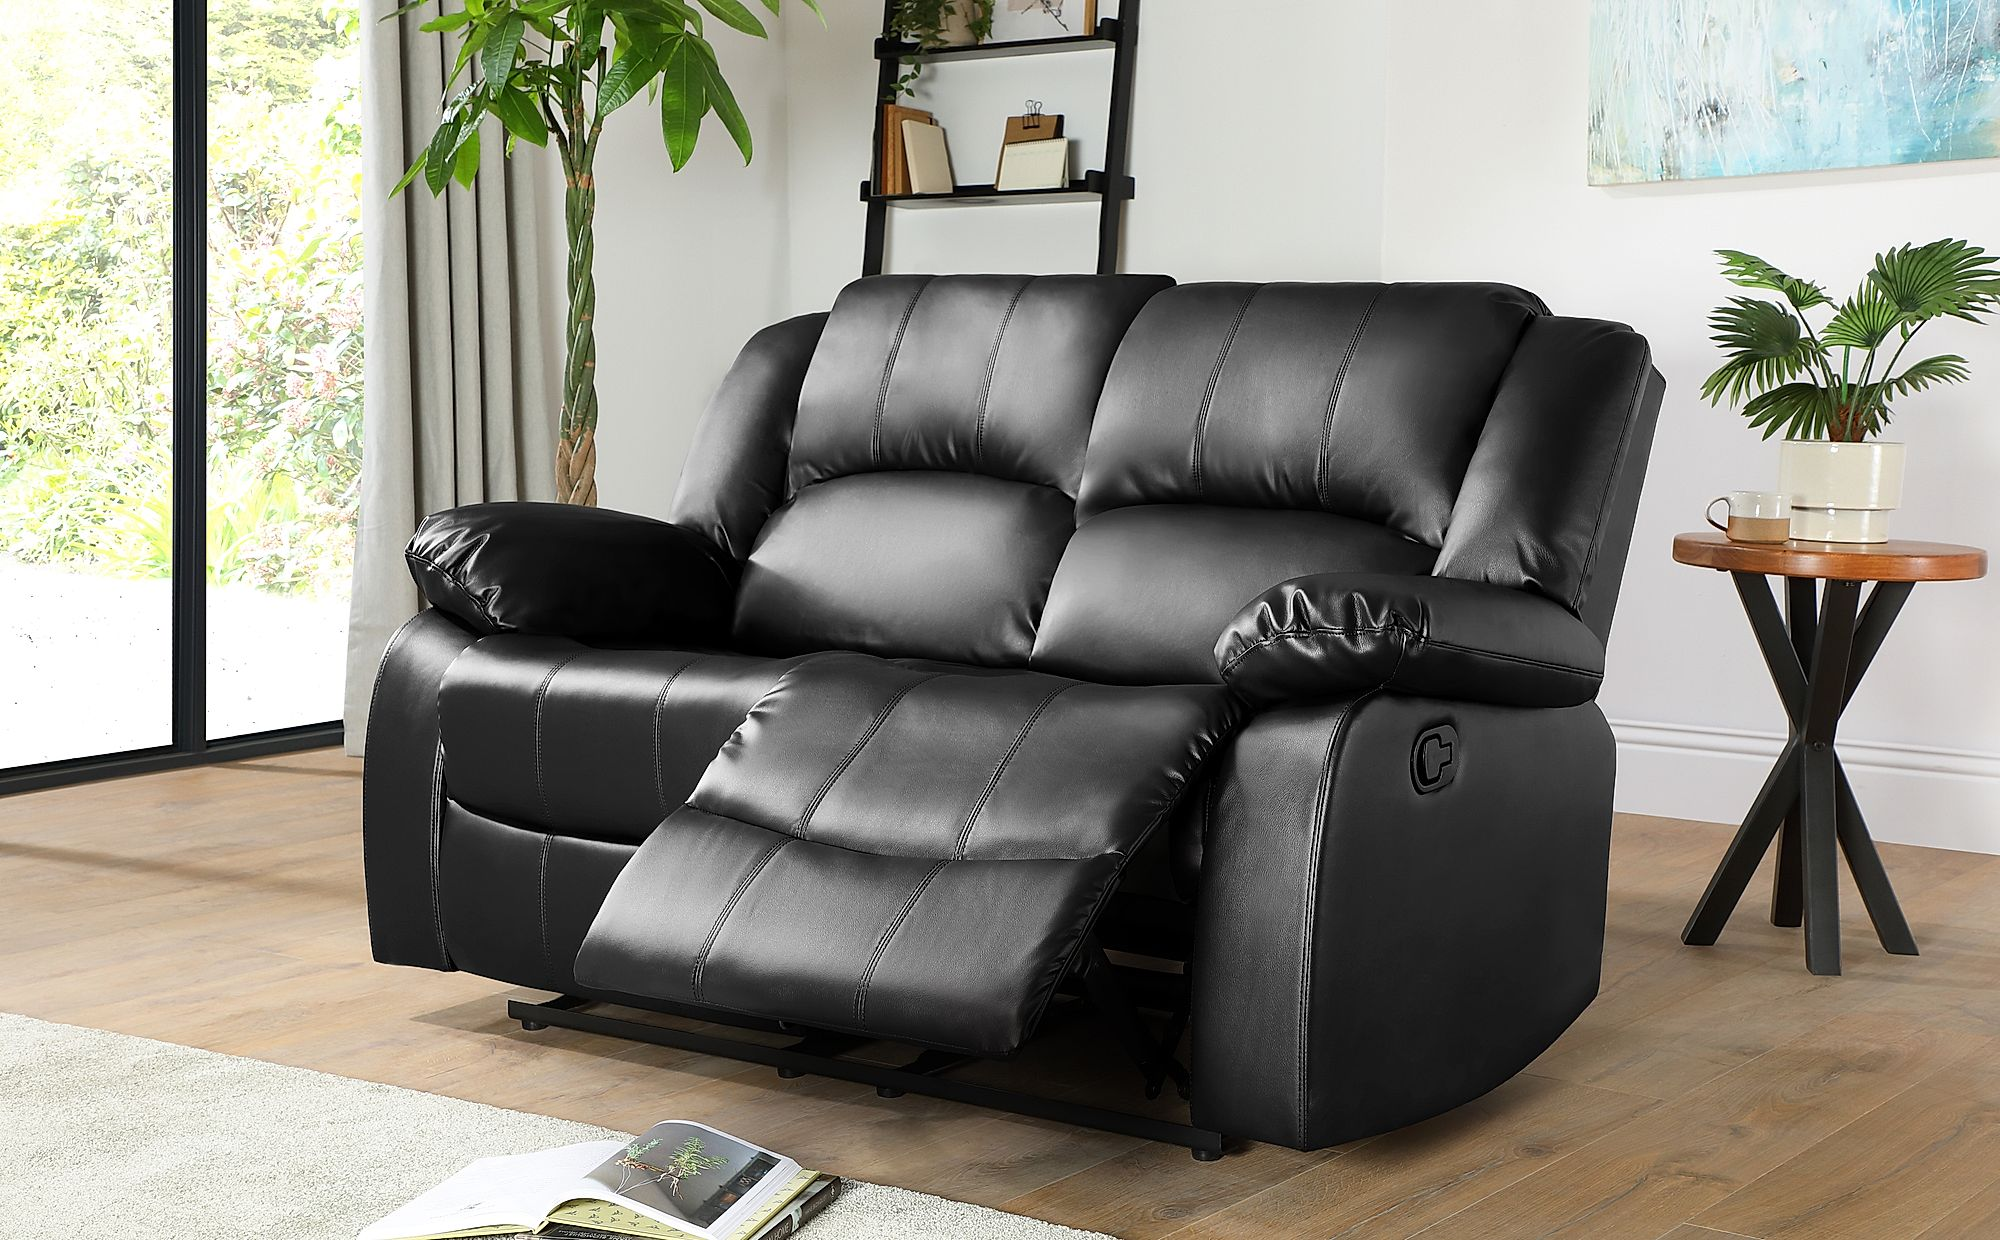 Dakota 2 Seater Leather Recliner Sofa Black Only 449 99